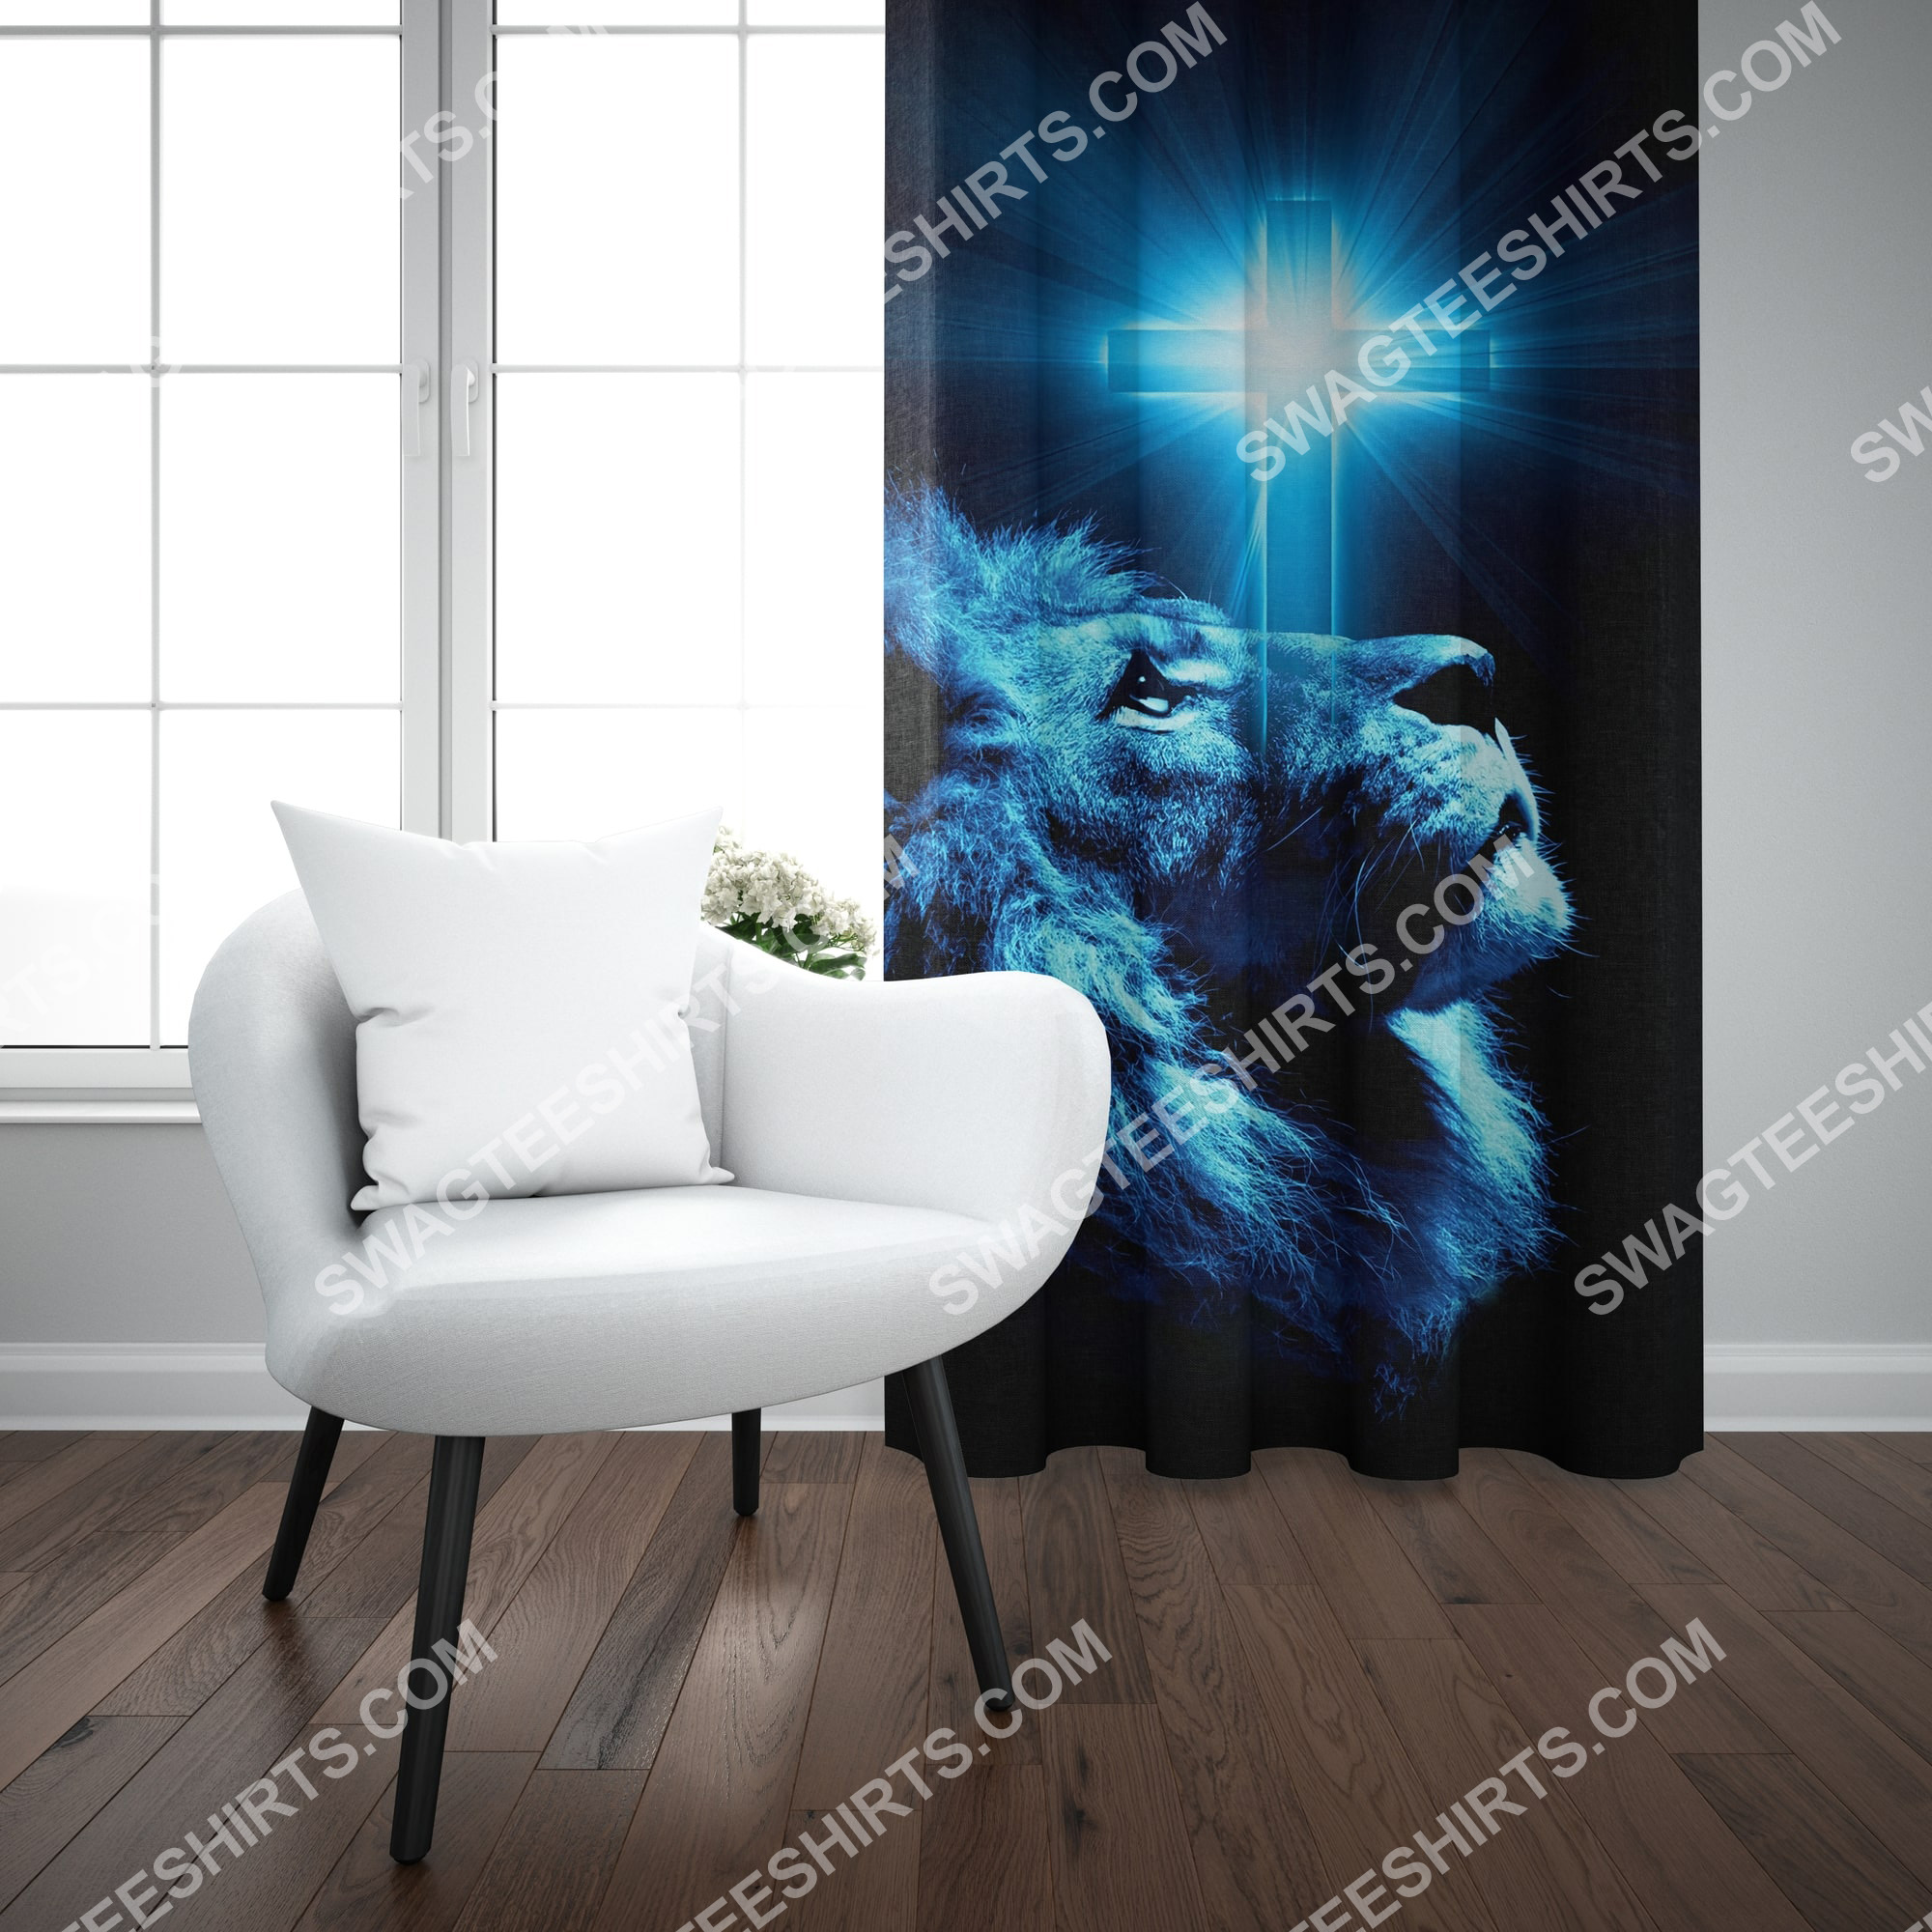 Jesus and lion all over printed window curtains 3(1) - Copy